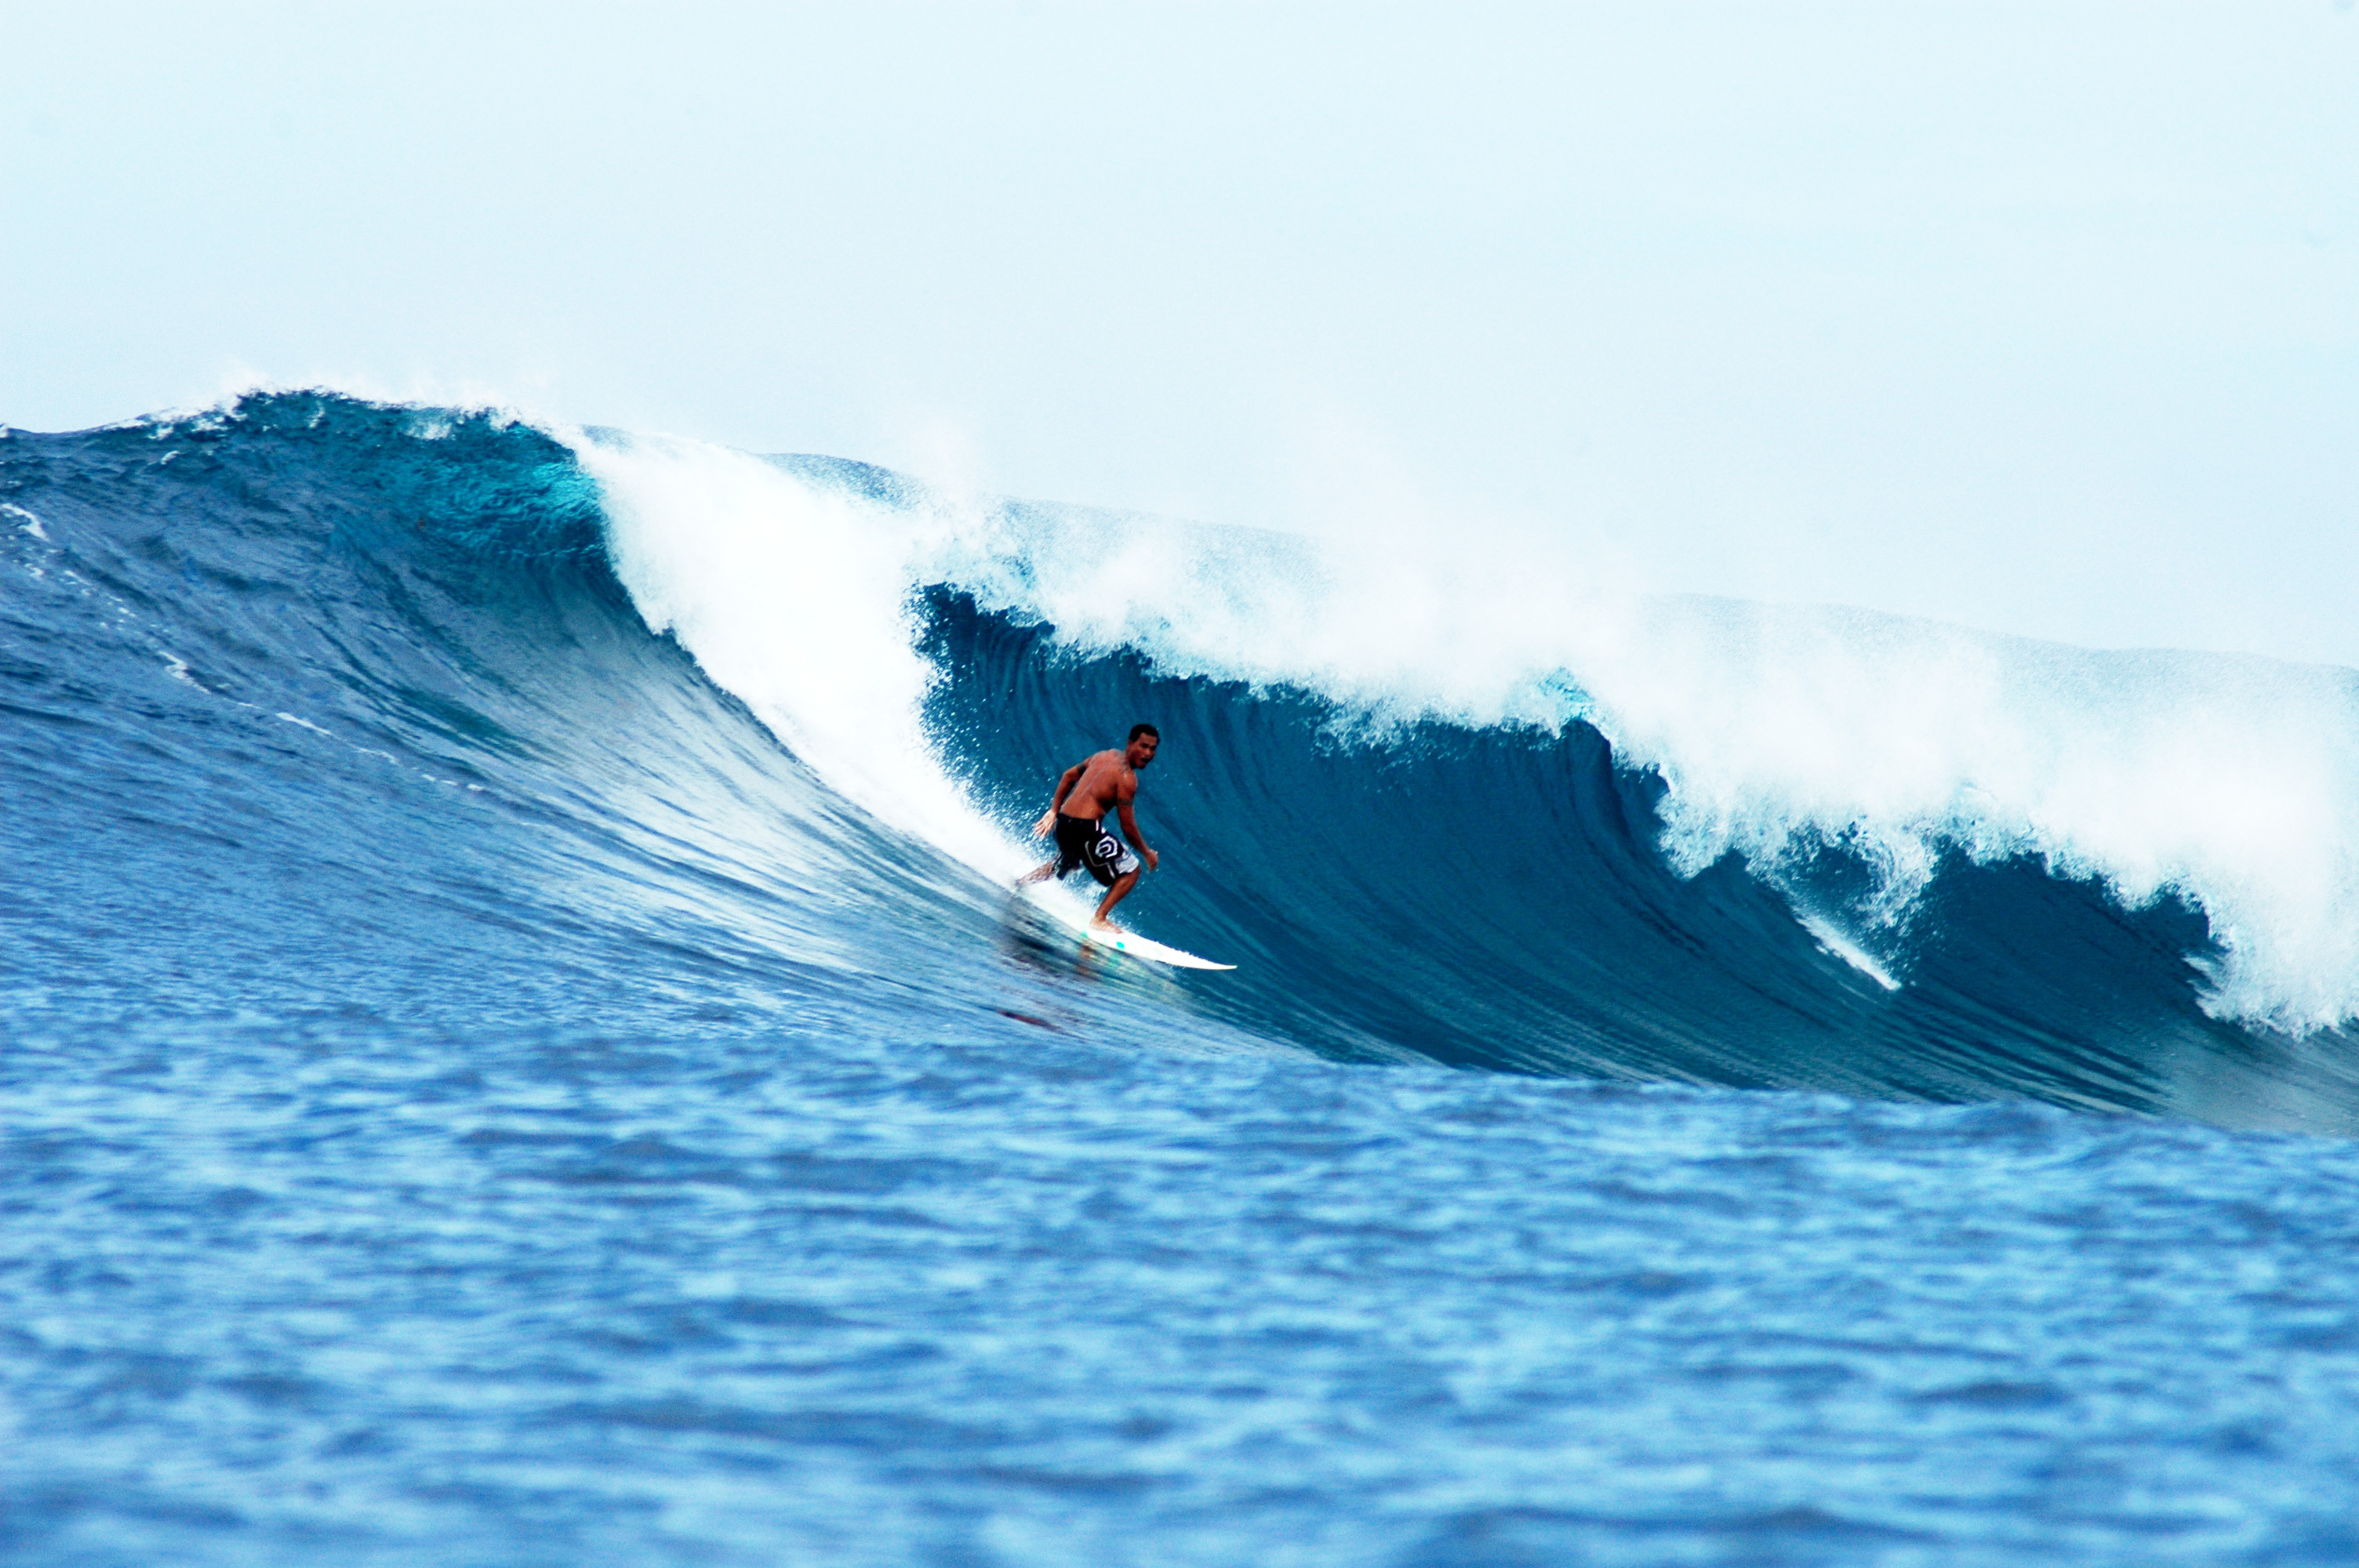 Image from surfingphilippines.com